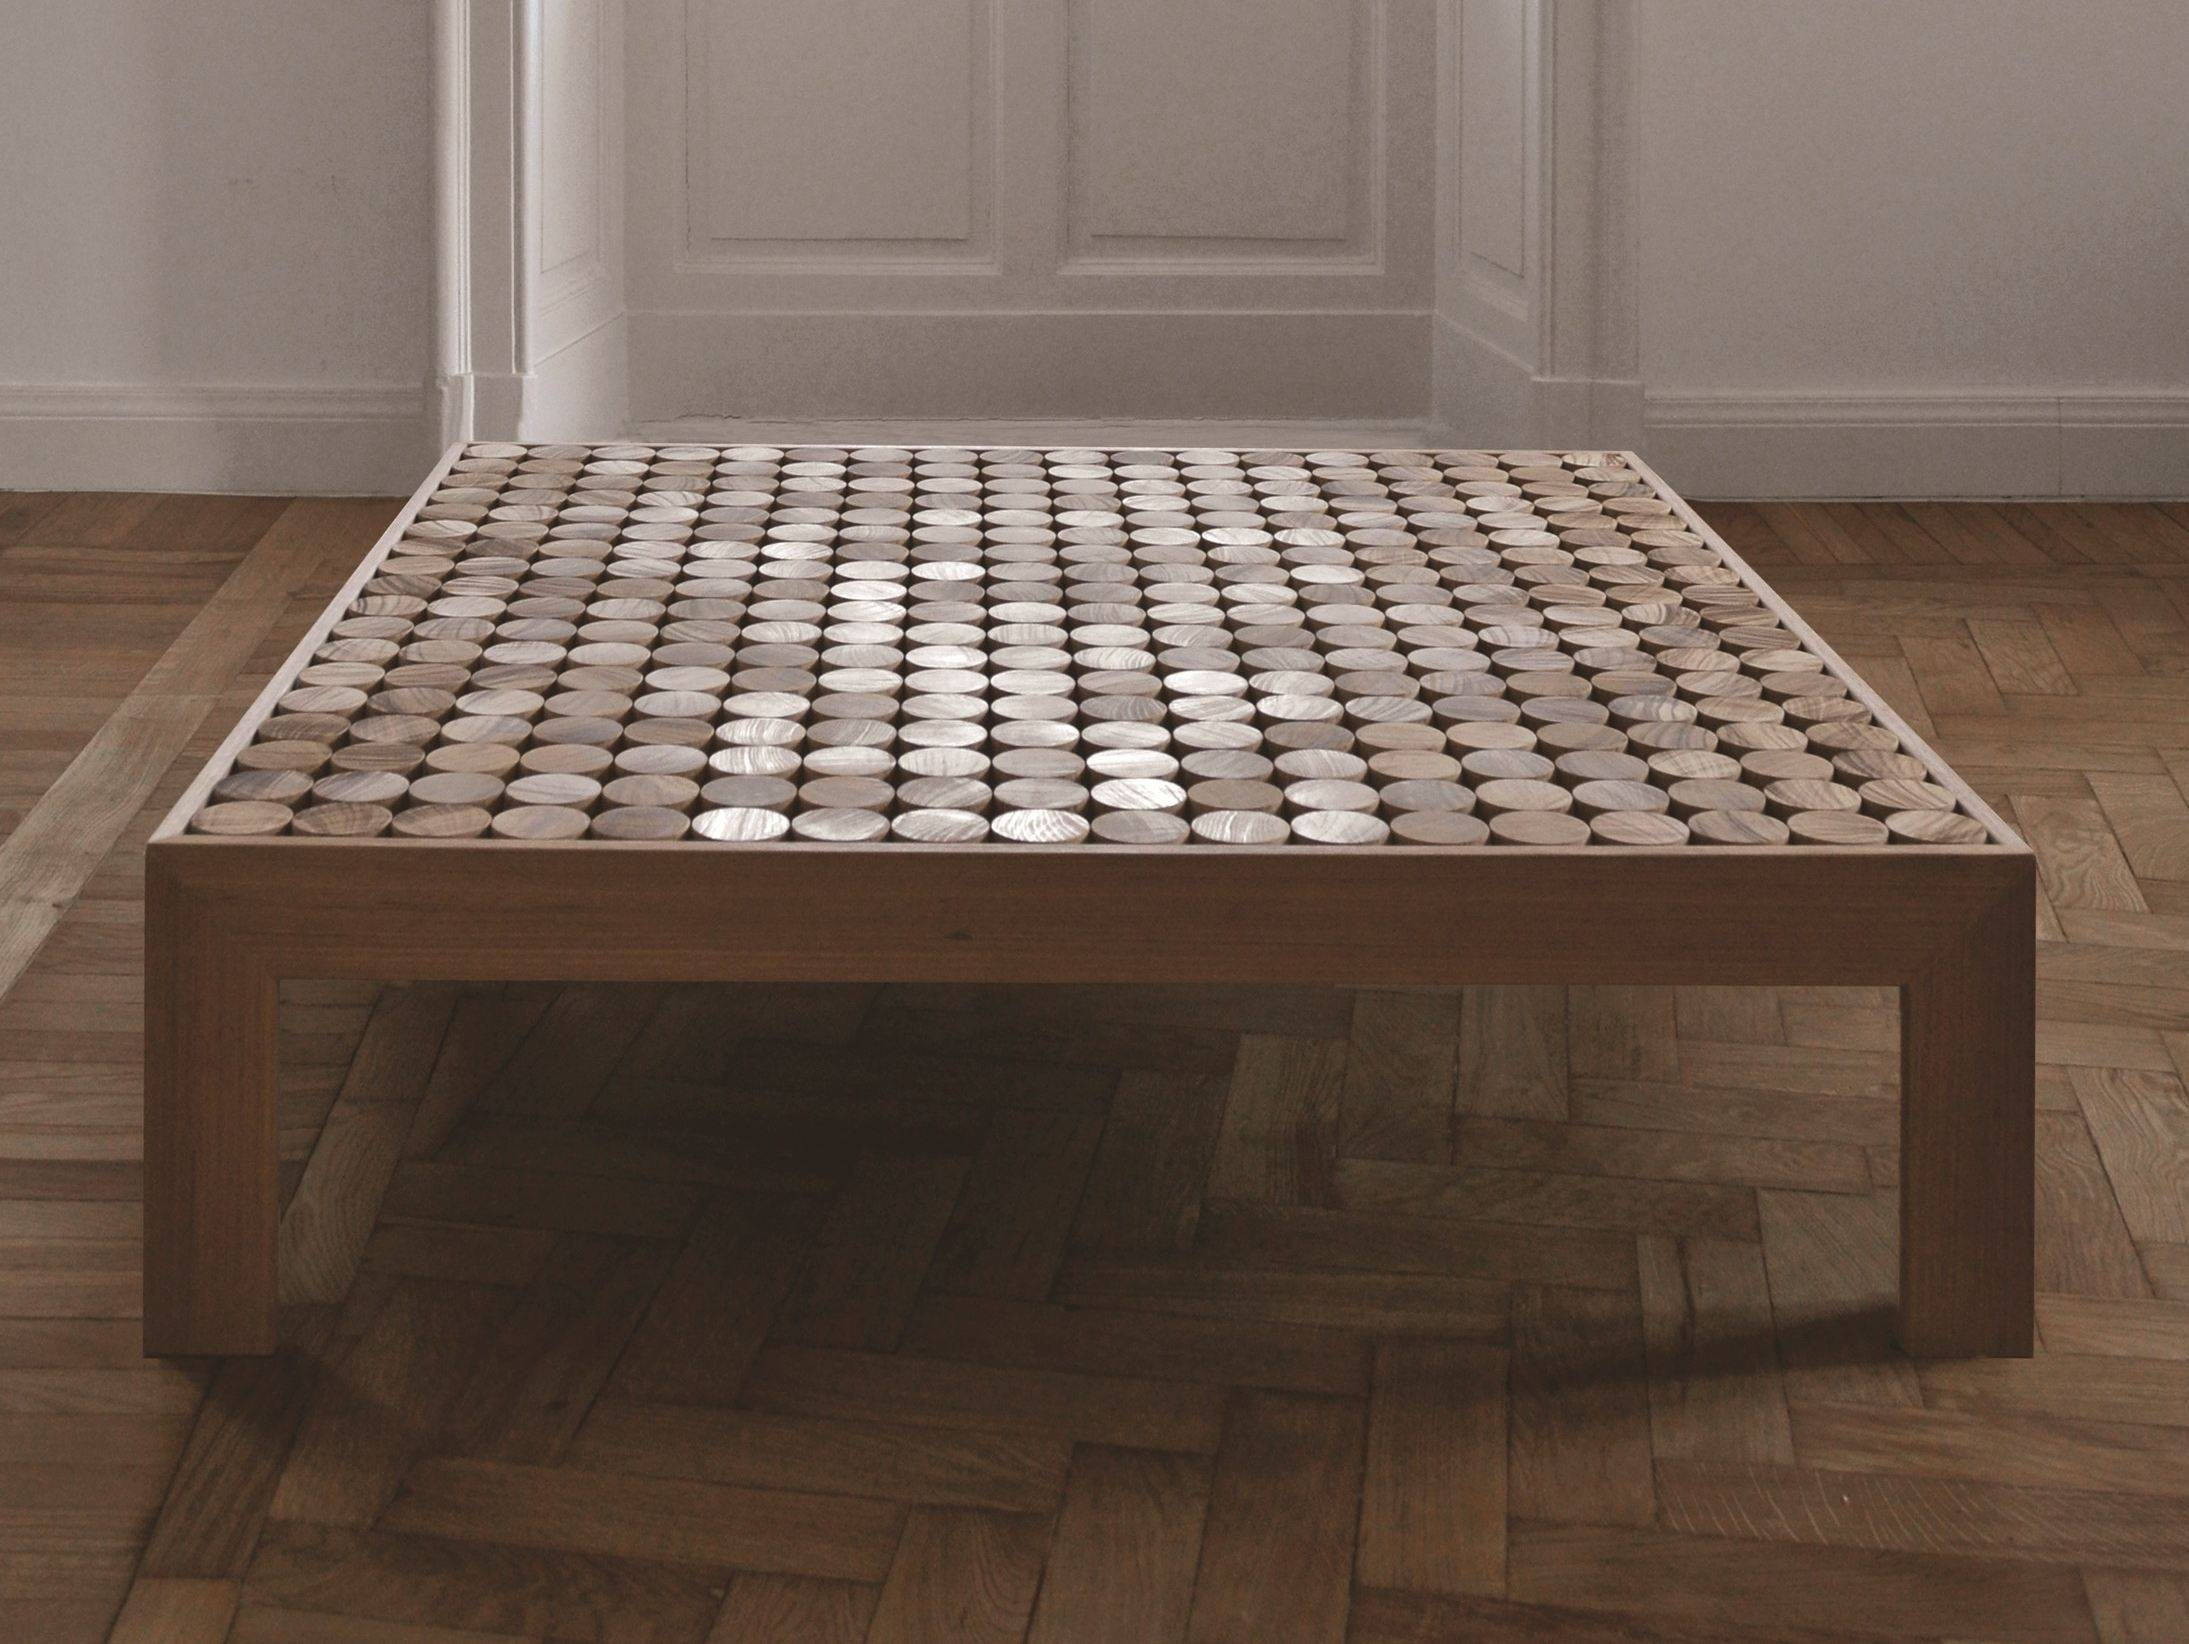 Low Square Coffee Table Wooden | Coffee Tables Decoration For Large Low Wooden Coffee Tables (View 6 of 30)